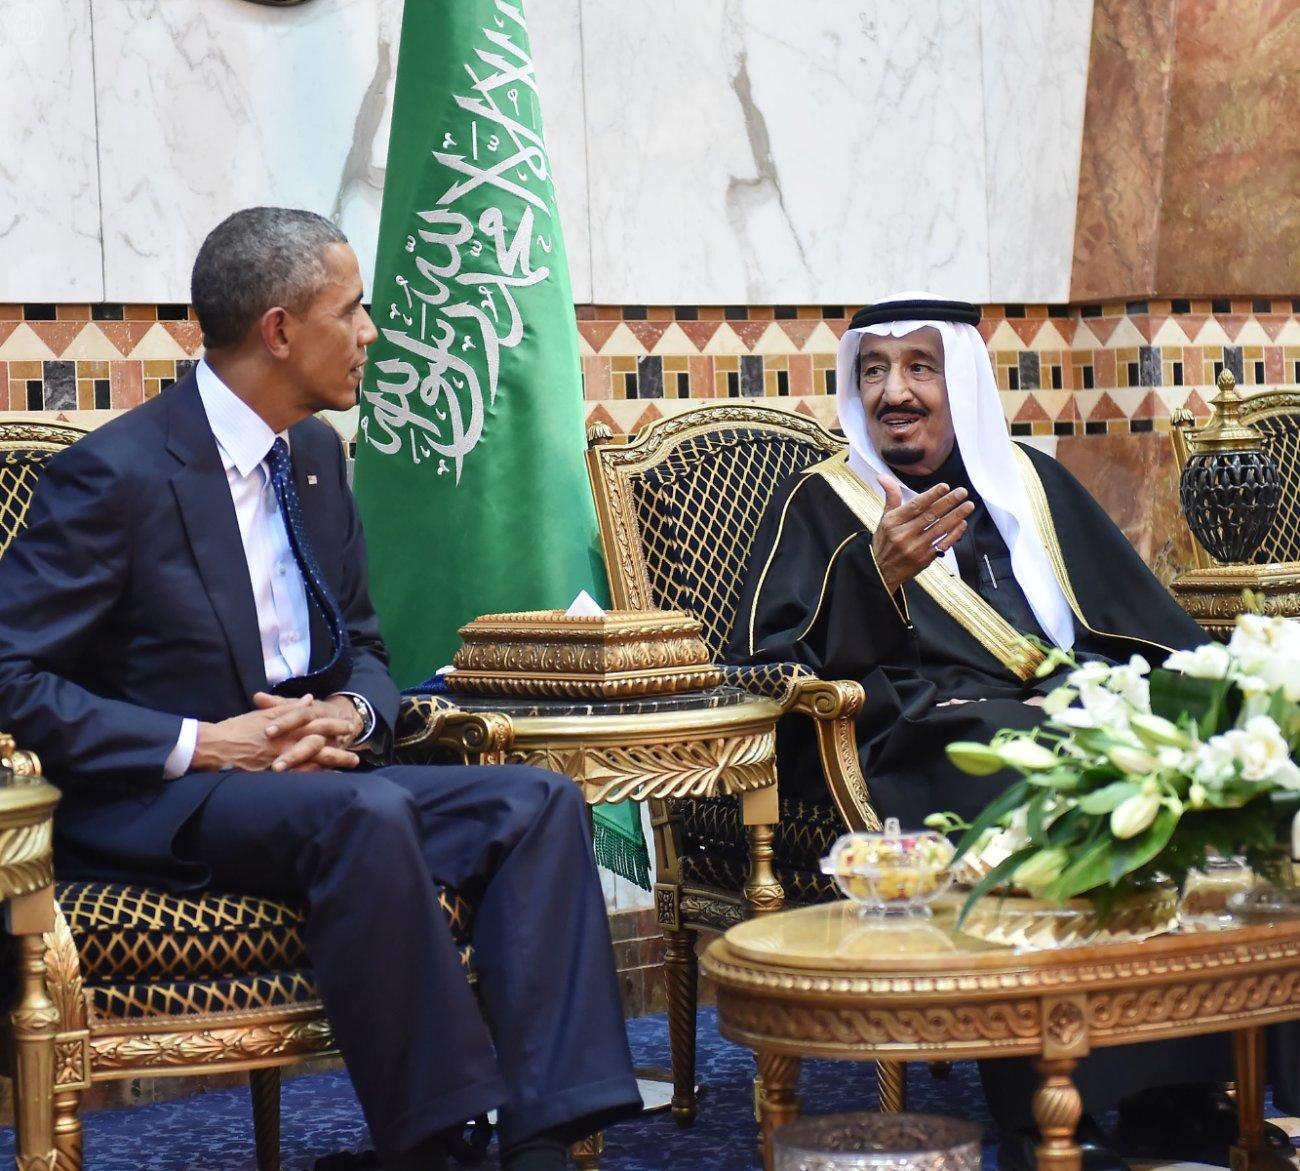 U.S. President Barack Obama talks with Saudi Arabia's King Salman bin Abdulaziz Al Saud(R) after arriving in Riyadh, Saudi Arabia, on Jan. 27, 2015. Obama cut short his visit to India to be able to visit Saudi Arabia to offer his condolences and discuss key regional and international topics. FILE PHOTO